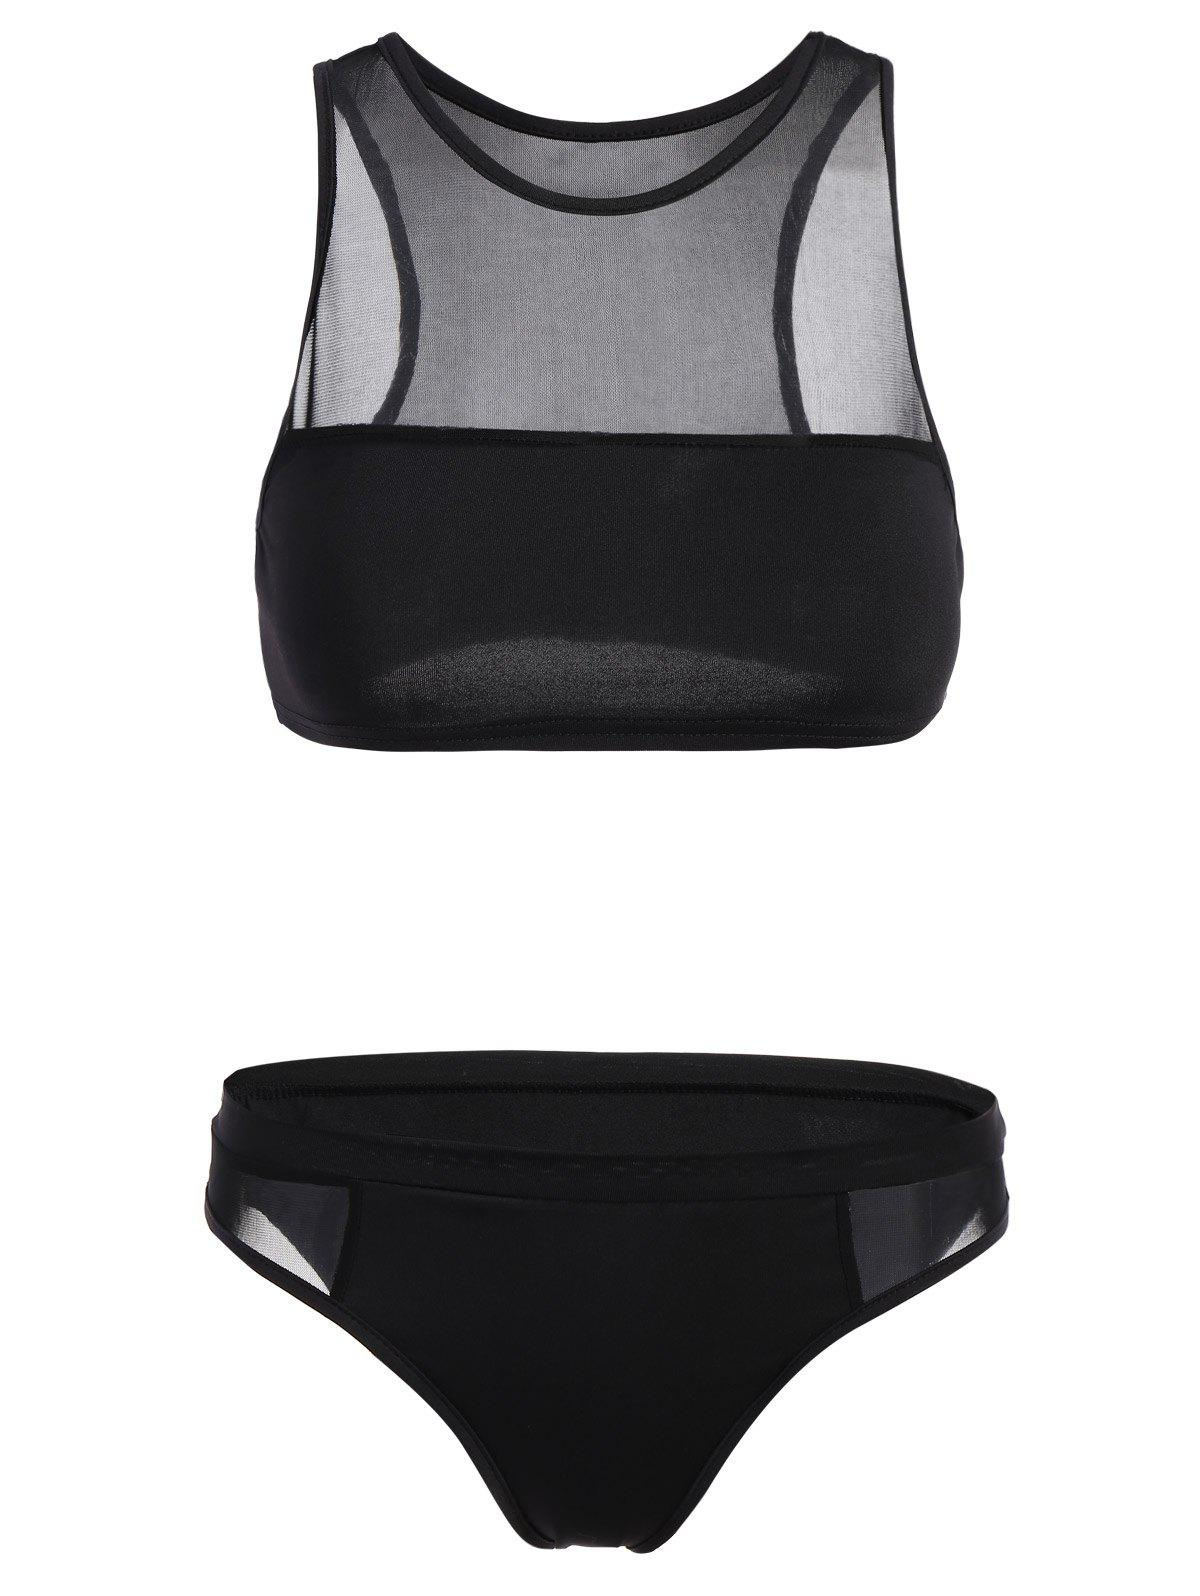 See-Through Crop Top Sheer Bathing SuitWOMEN<br><br>Size: XL; Color: BLACK; Gender: For Women; Material: Polyester; Bra Style: Push Up; Support Type: Wire Free; Pattern Type: Solid; Swimwear Type: Two-Pieces Separate; Waist: Natural; Weight: 0.085KG; Package Contents: 1 x Crop Top  1 x Briefs;